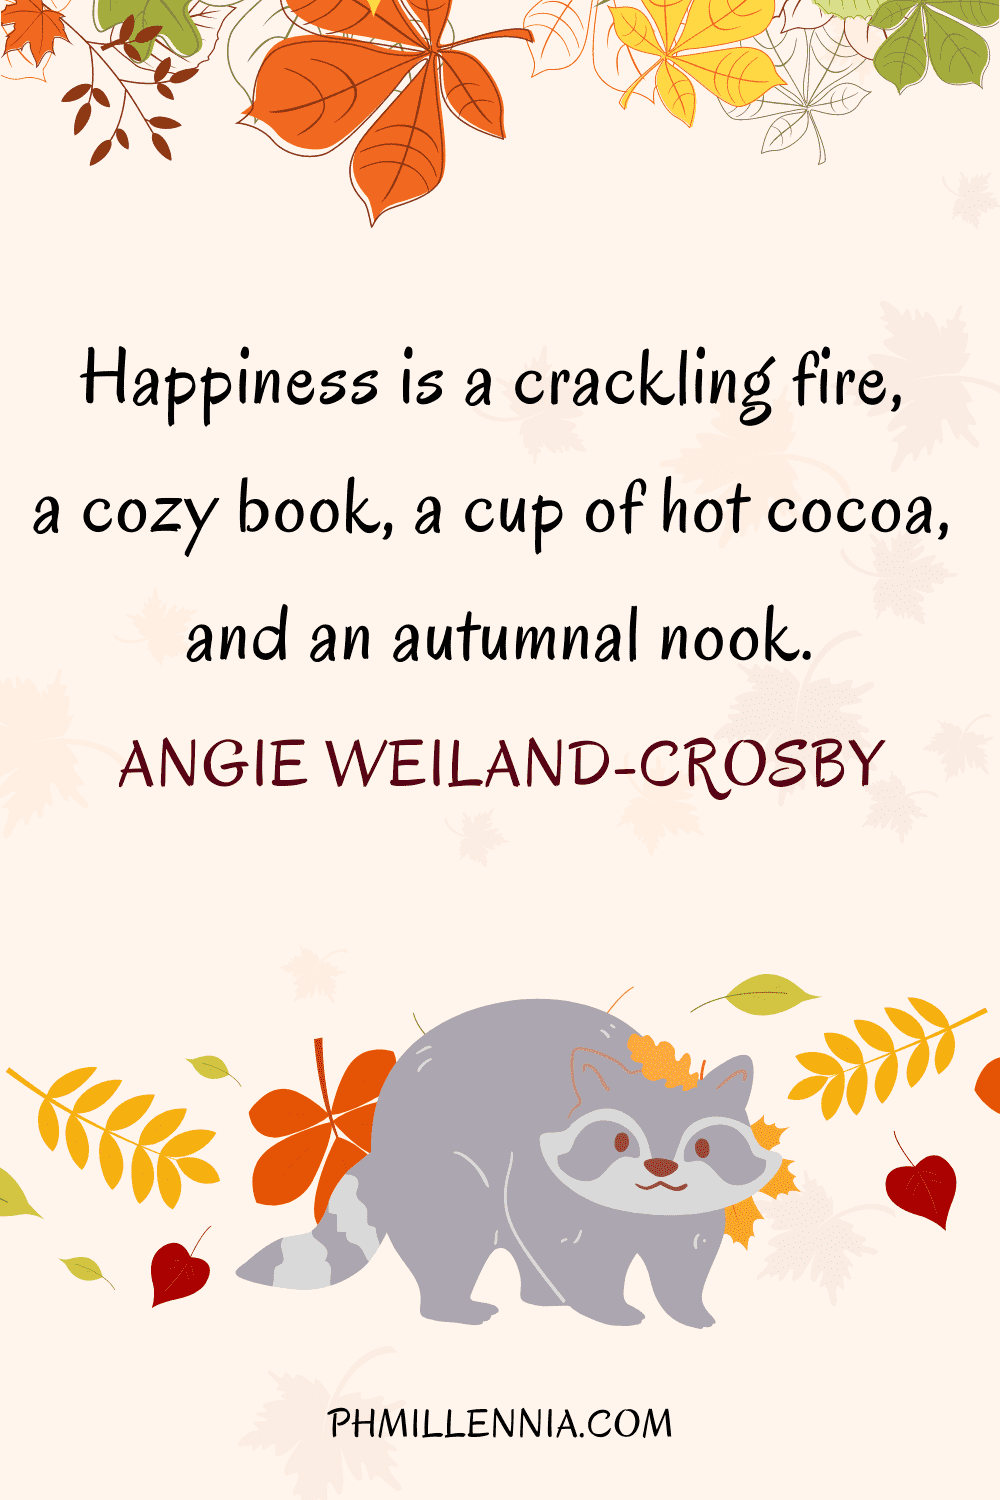 """A graphic featuring an autumn quote/fall saying over an image of a raccoon and autumn/fall leaves, designed as a Pinterest Pin for the article """"199 Autumn Quotes to Fall Deeply and Spectacularly in Love With"""" on phmillennia.com"""